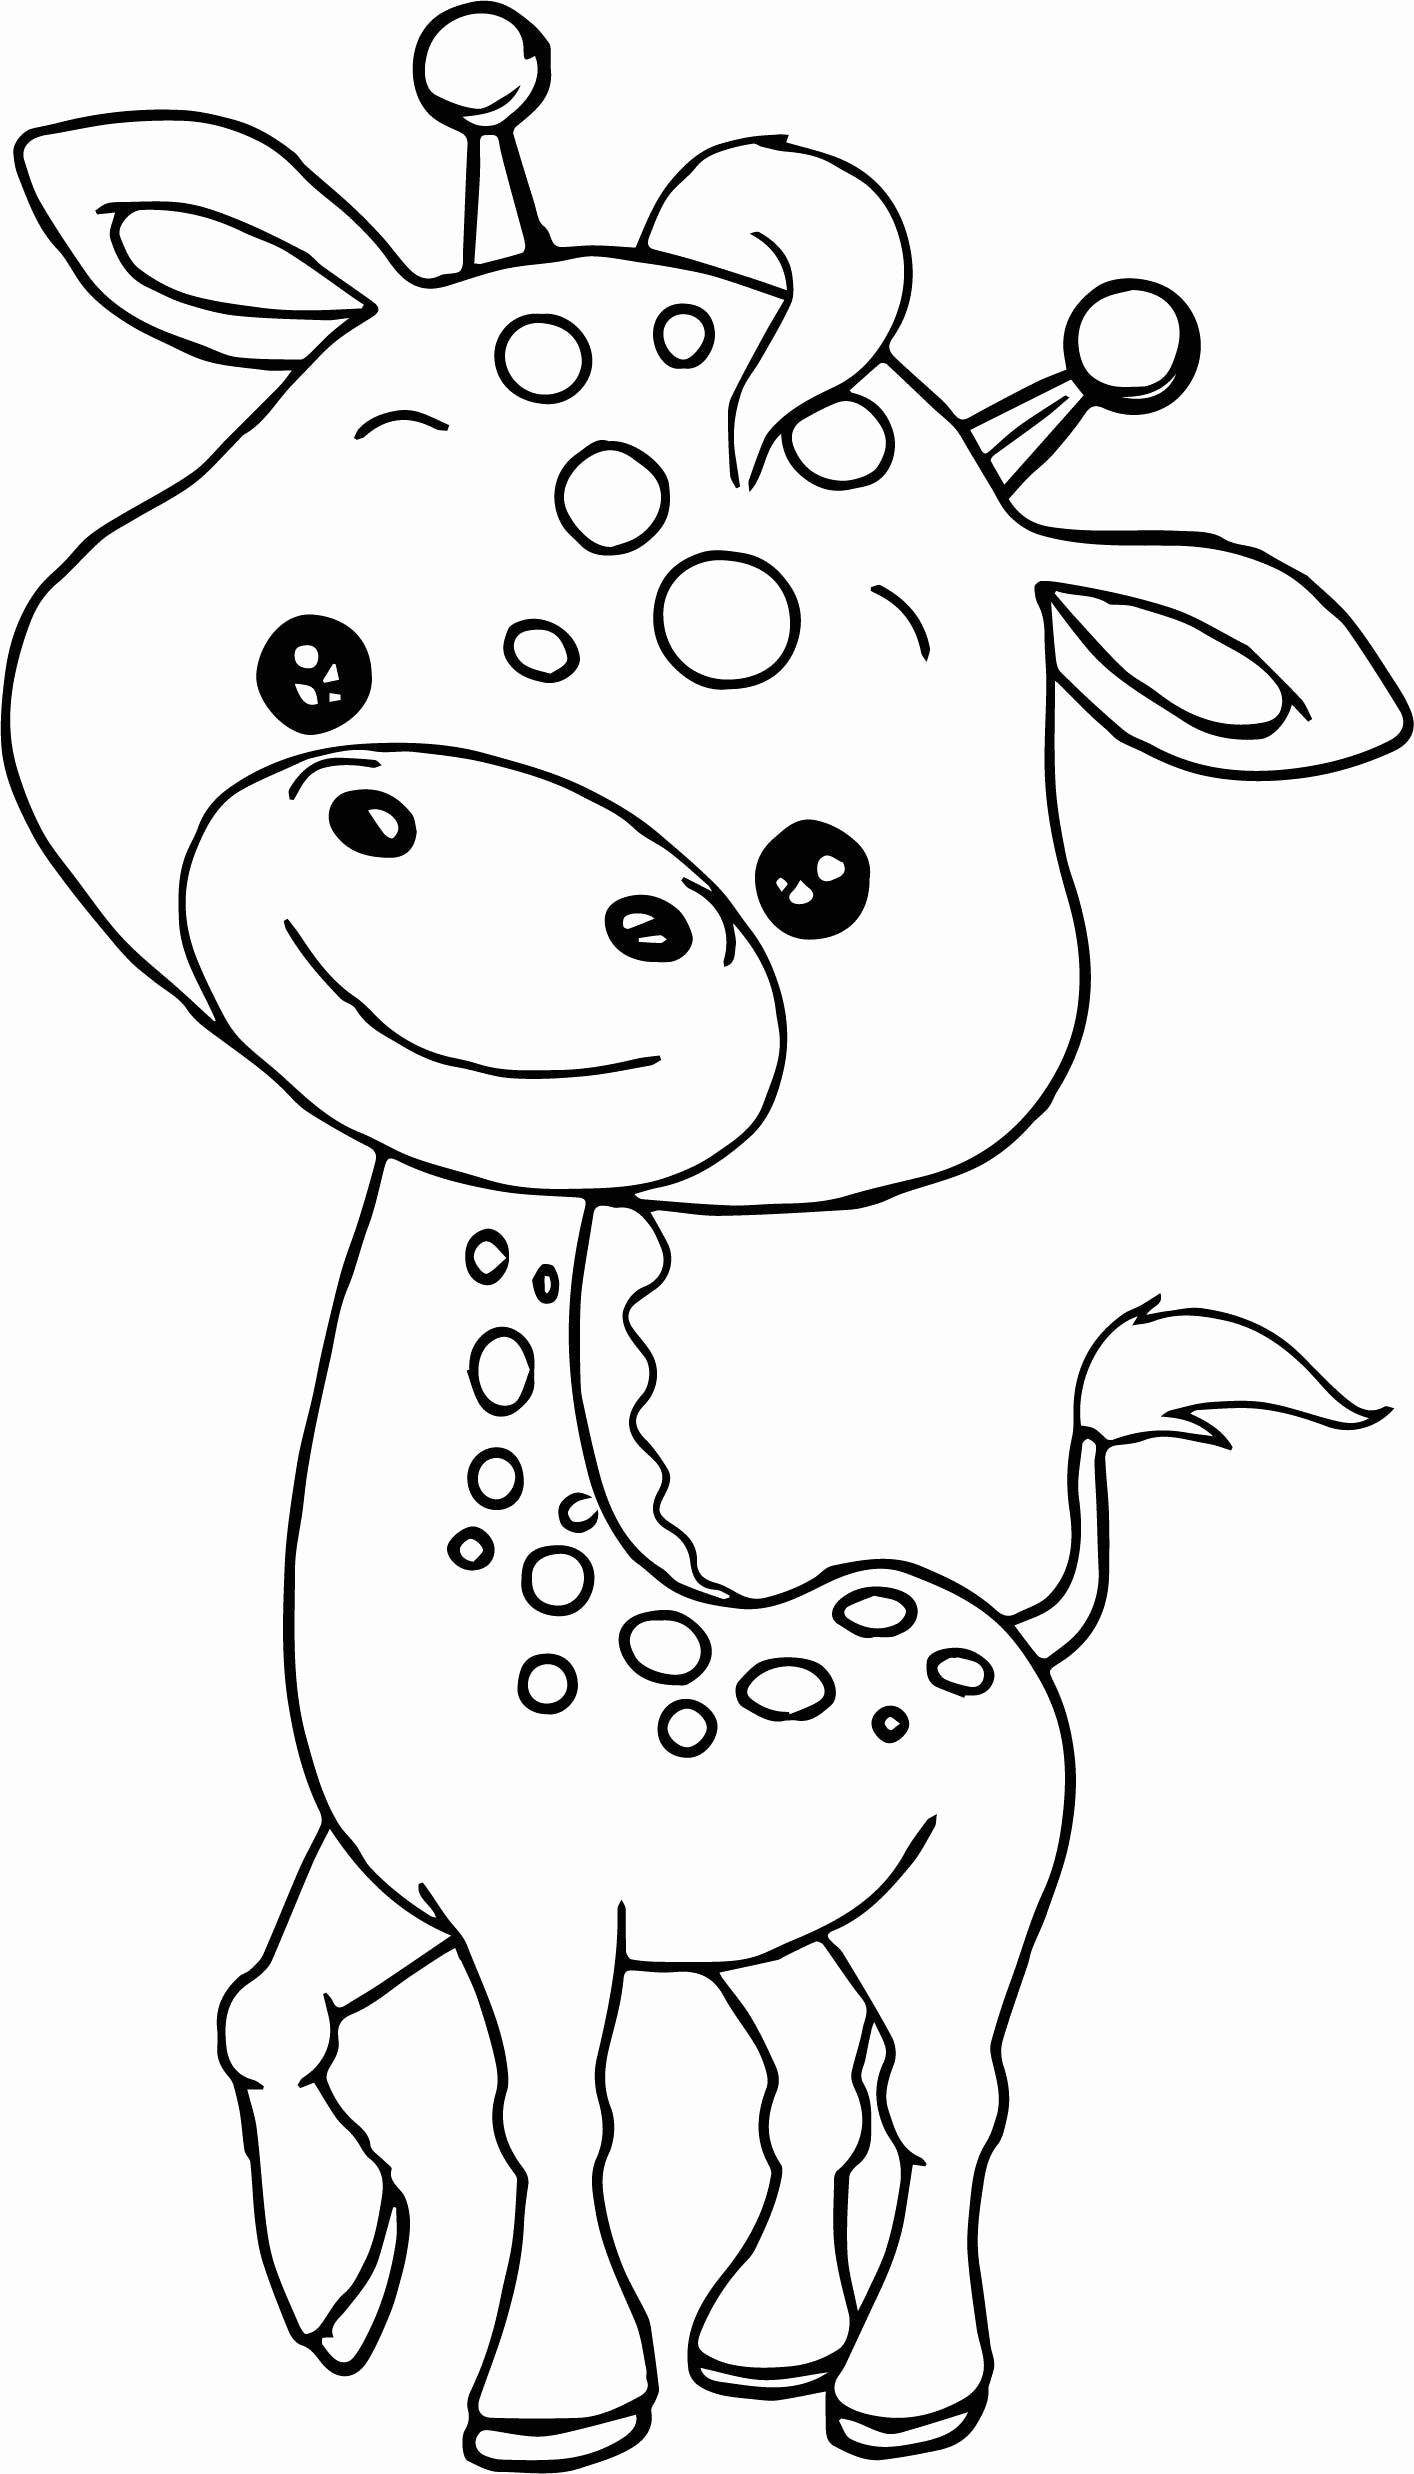 Cute Baby Animal Coloring Pages For Kids Zoo Animal Coloring Pages Giraffe Coloring Pages Zoo Coloring Pages